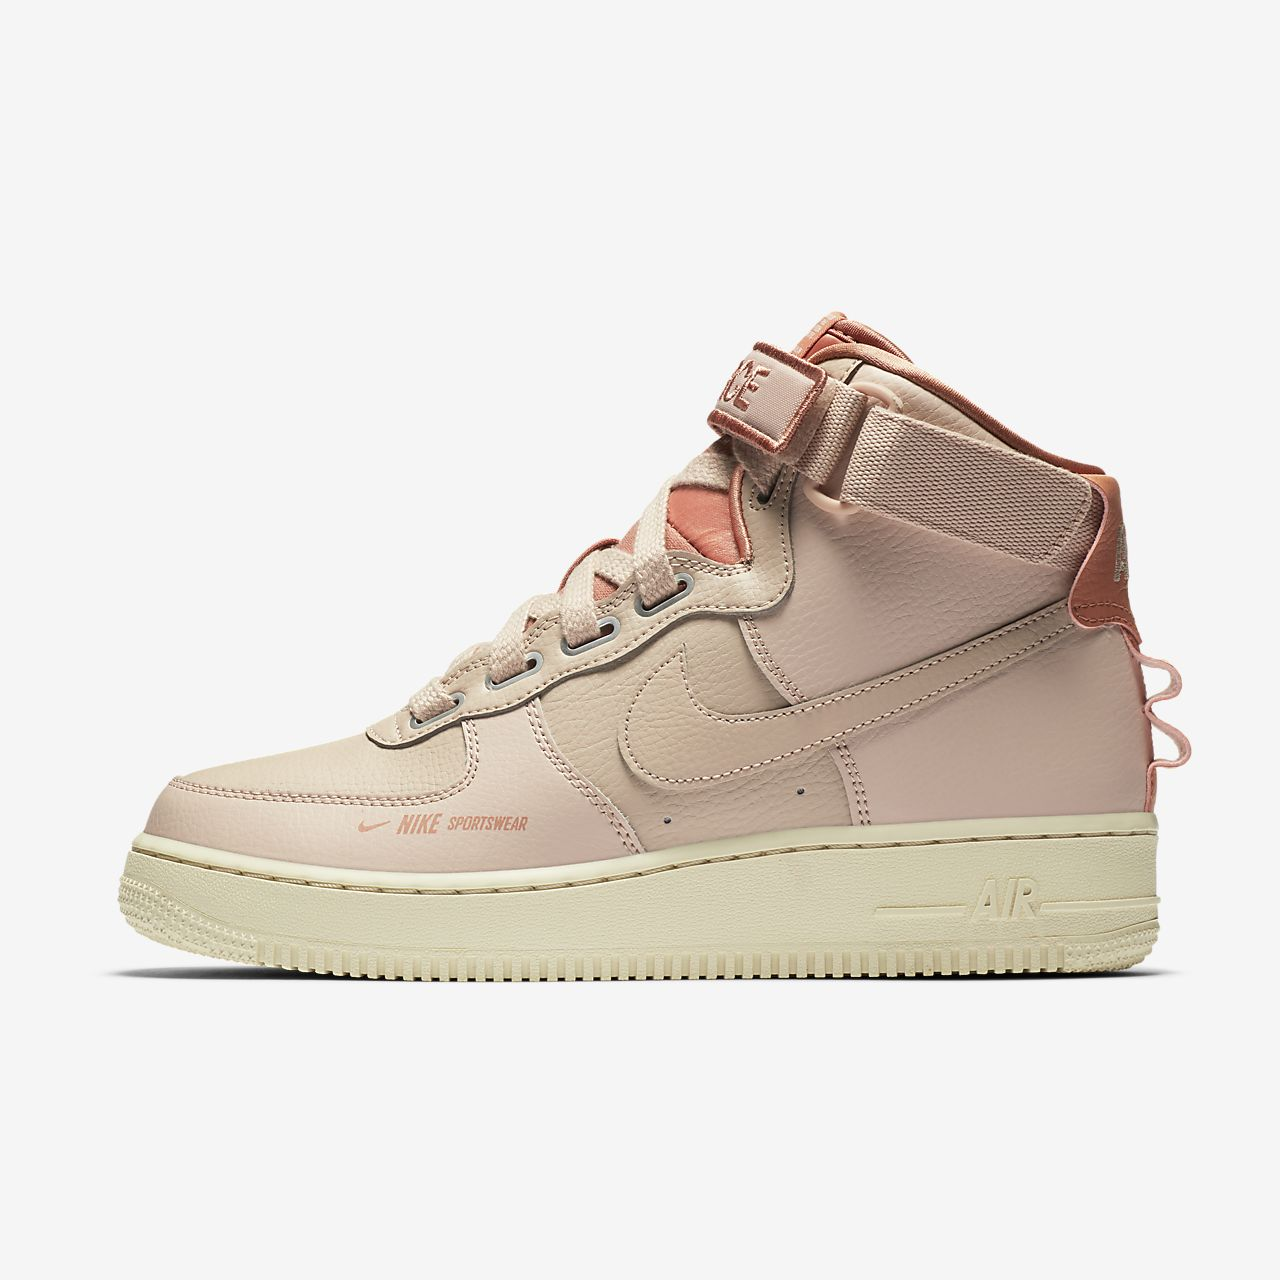 Chaussure Force Utility Pour Nike 1 High Air FemmeBe IYbf6yv7g